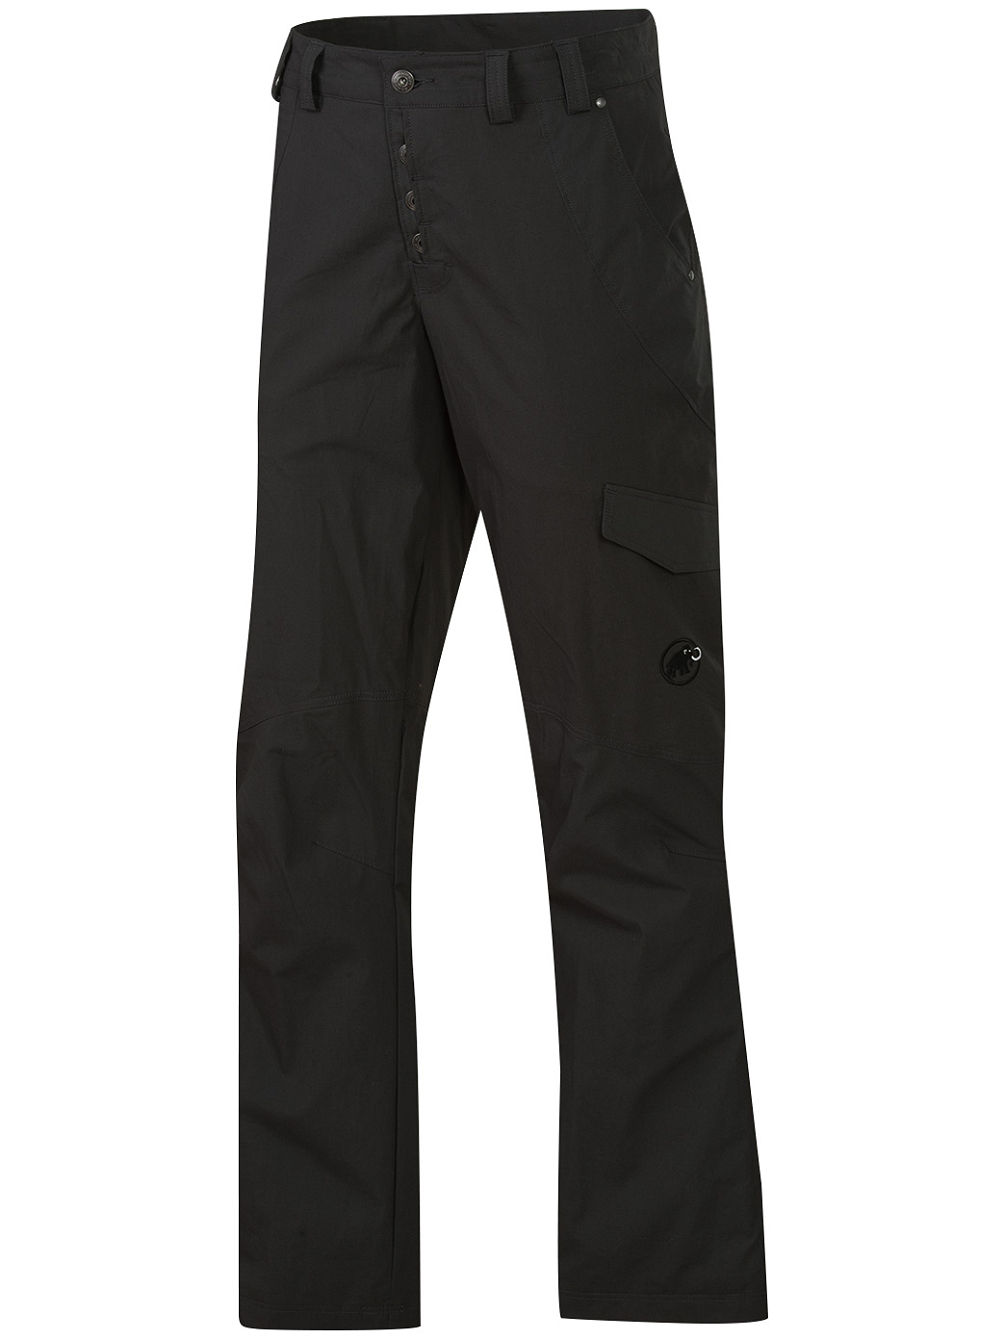 mammut-trovat-advanced-outdoor-pants-long